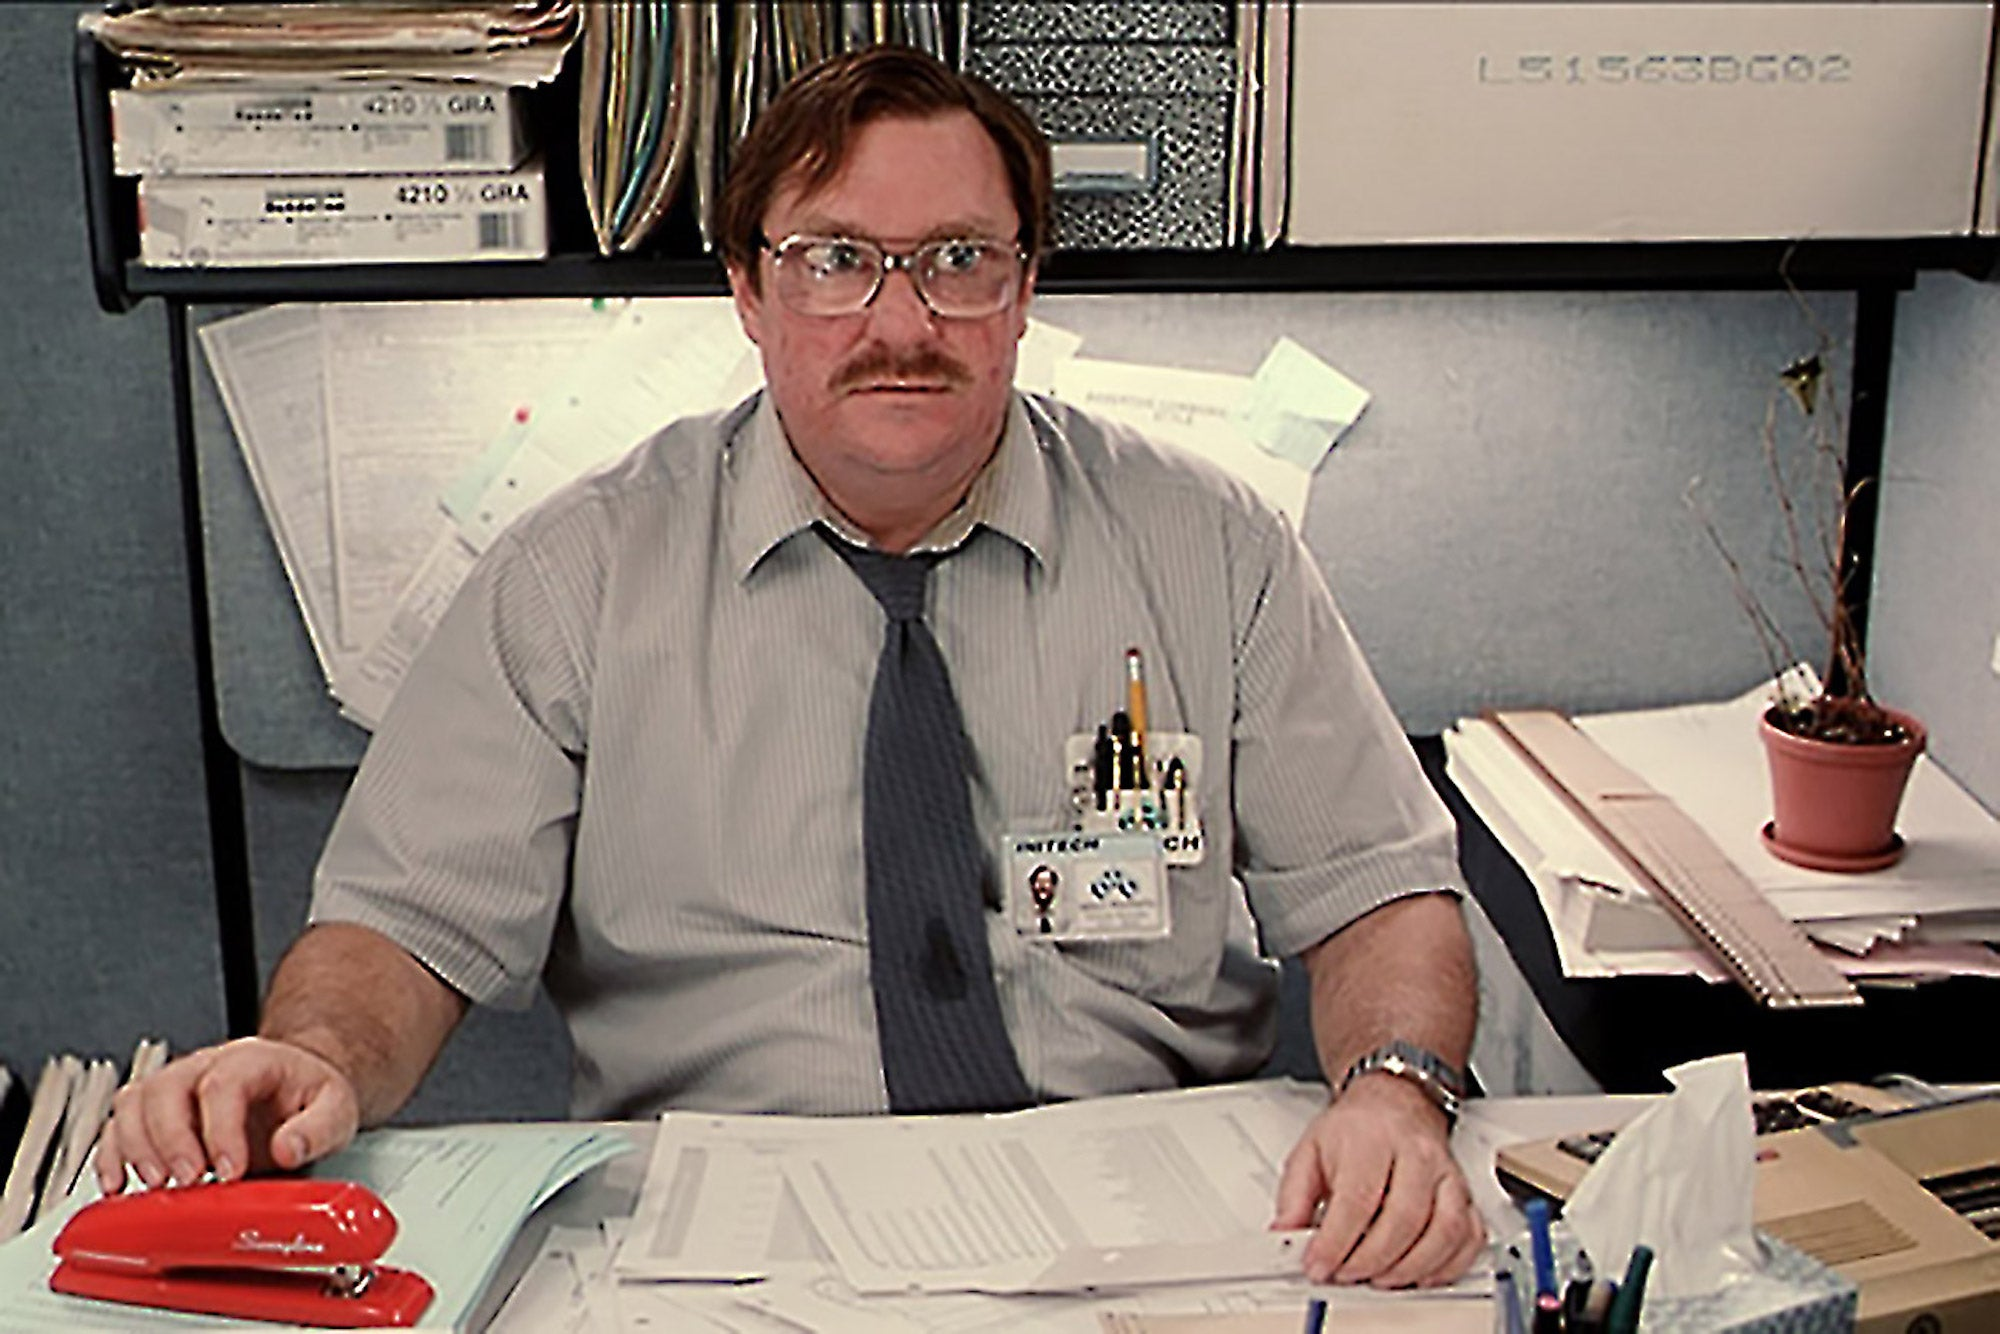 office space pic. Office Space Pic F